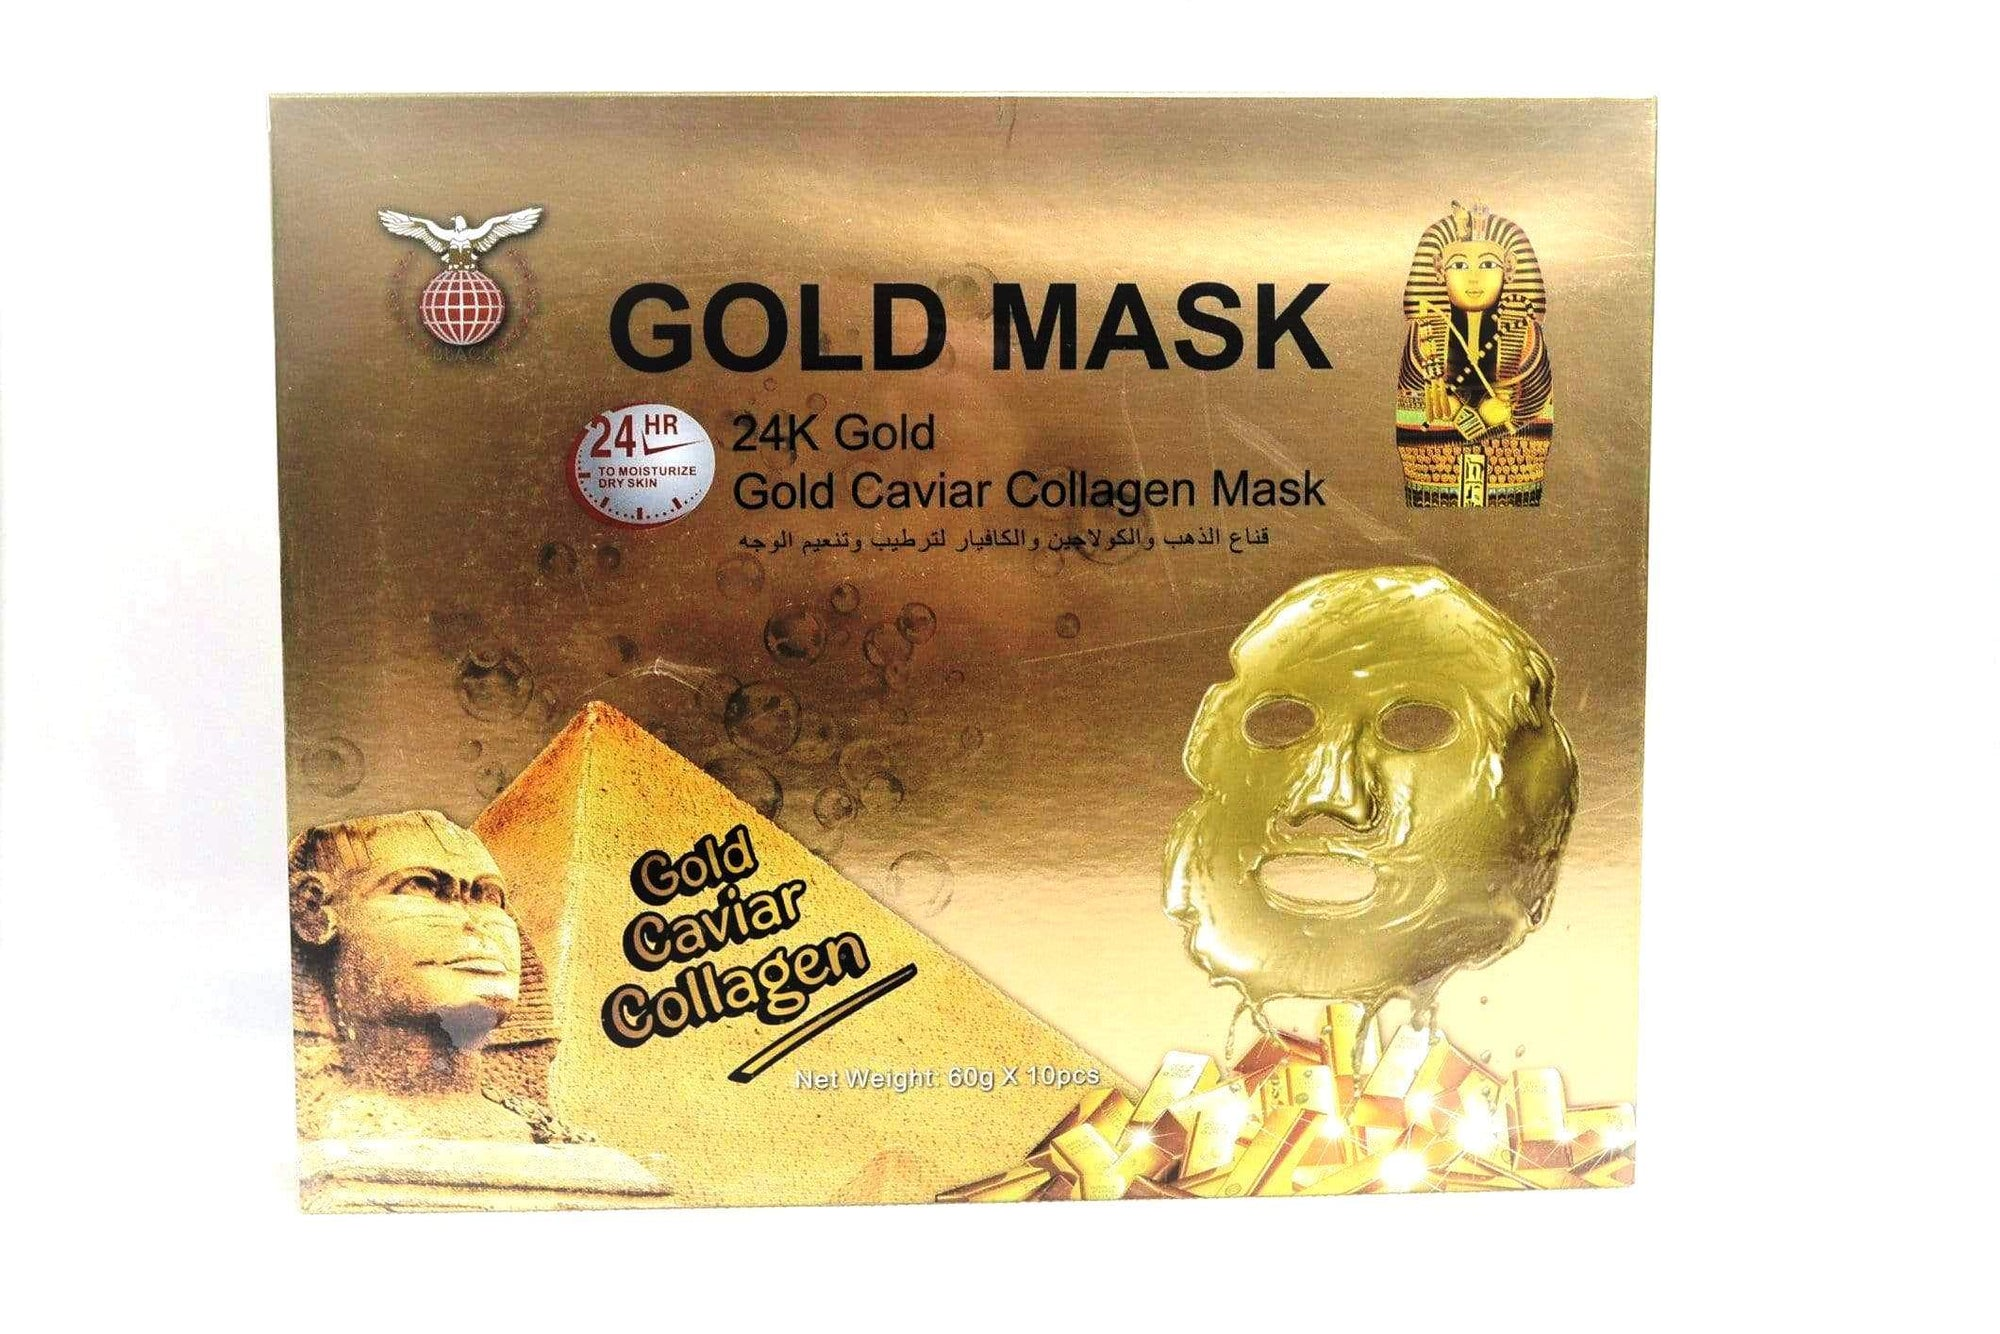 Gold mask, Face mask, Facial mask, Skin care, Beauty, Beauty care